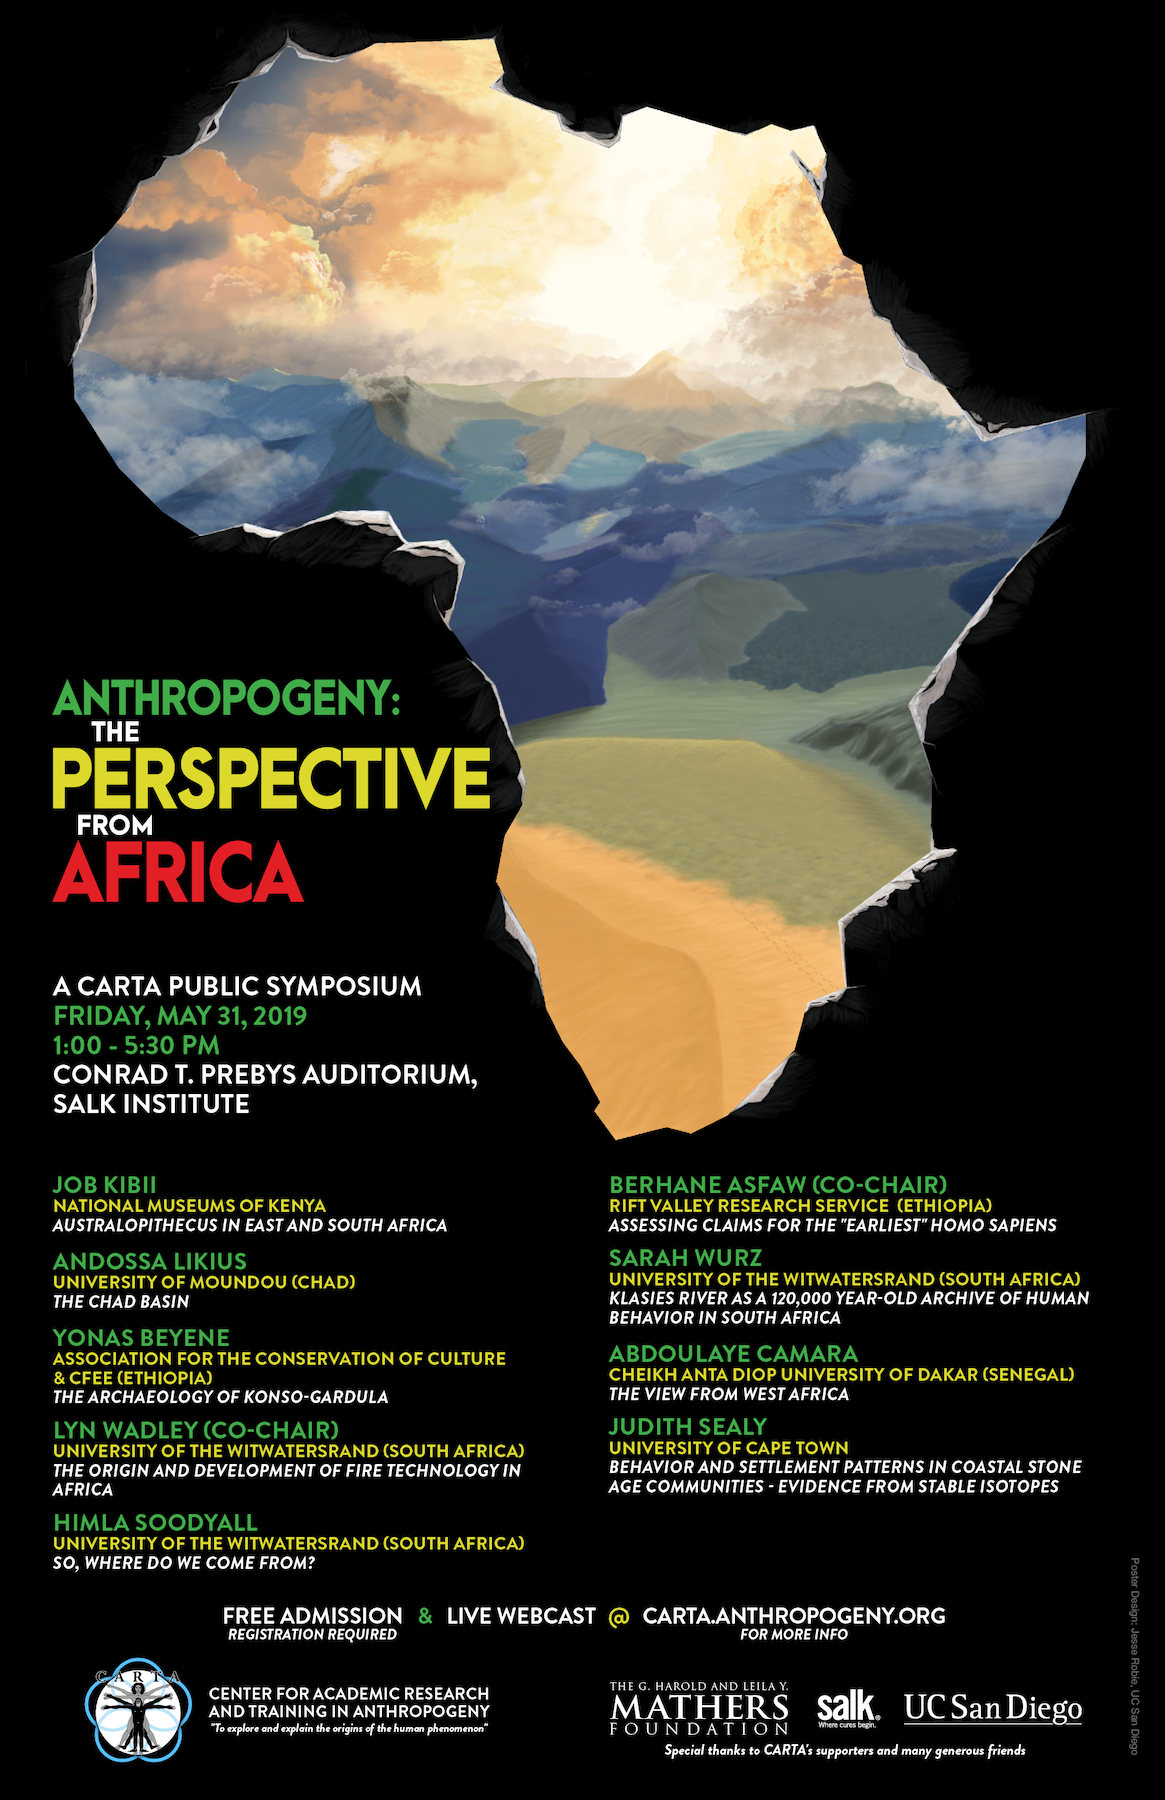 Anthropogeny: The Perspective from Africa Symposium